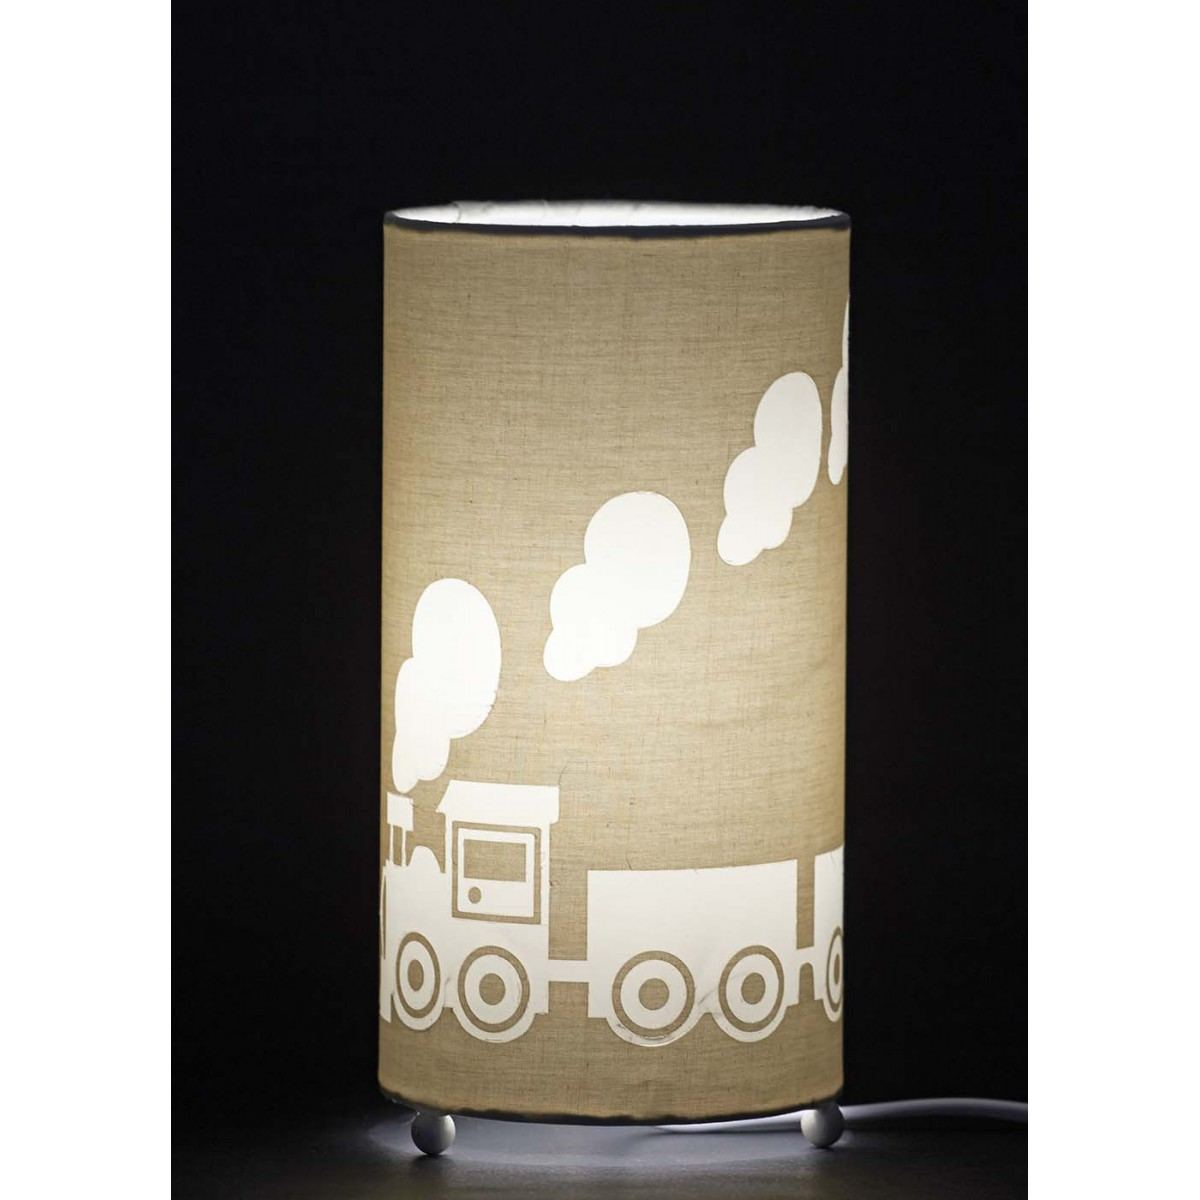 Lampe table de nuit maison design - Lampe de table enfant ...